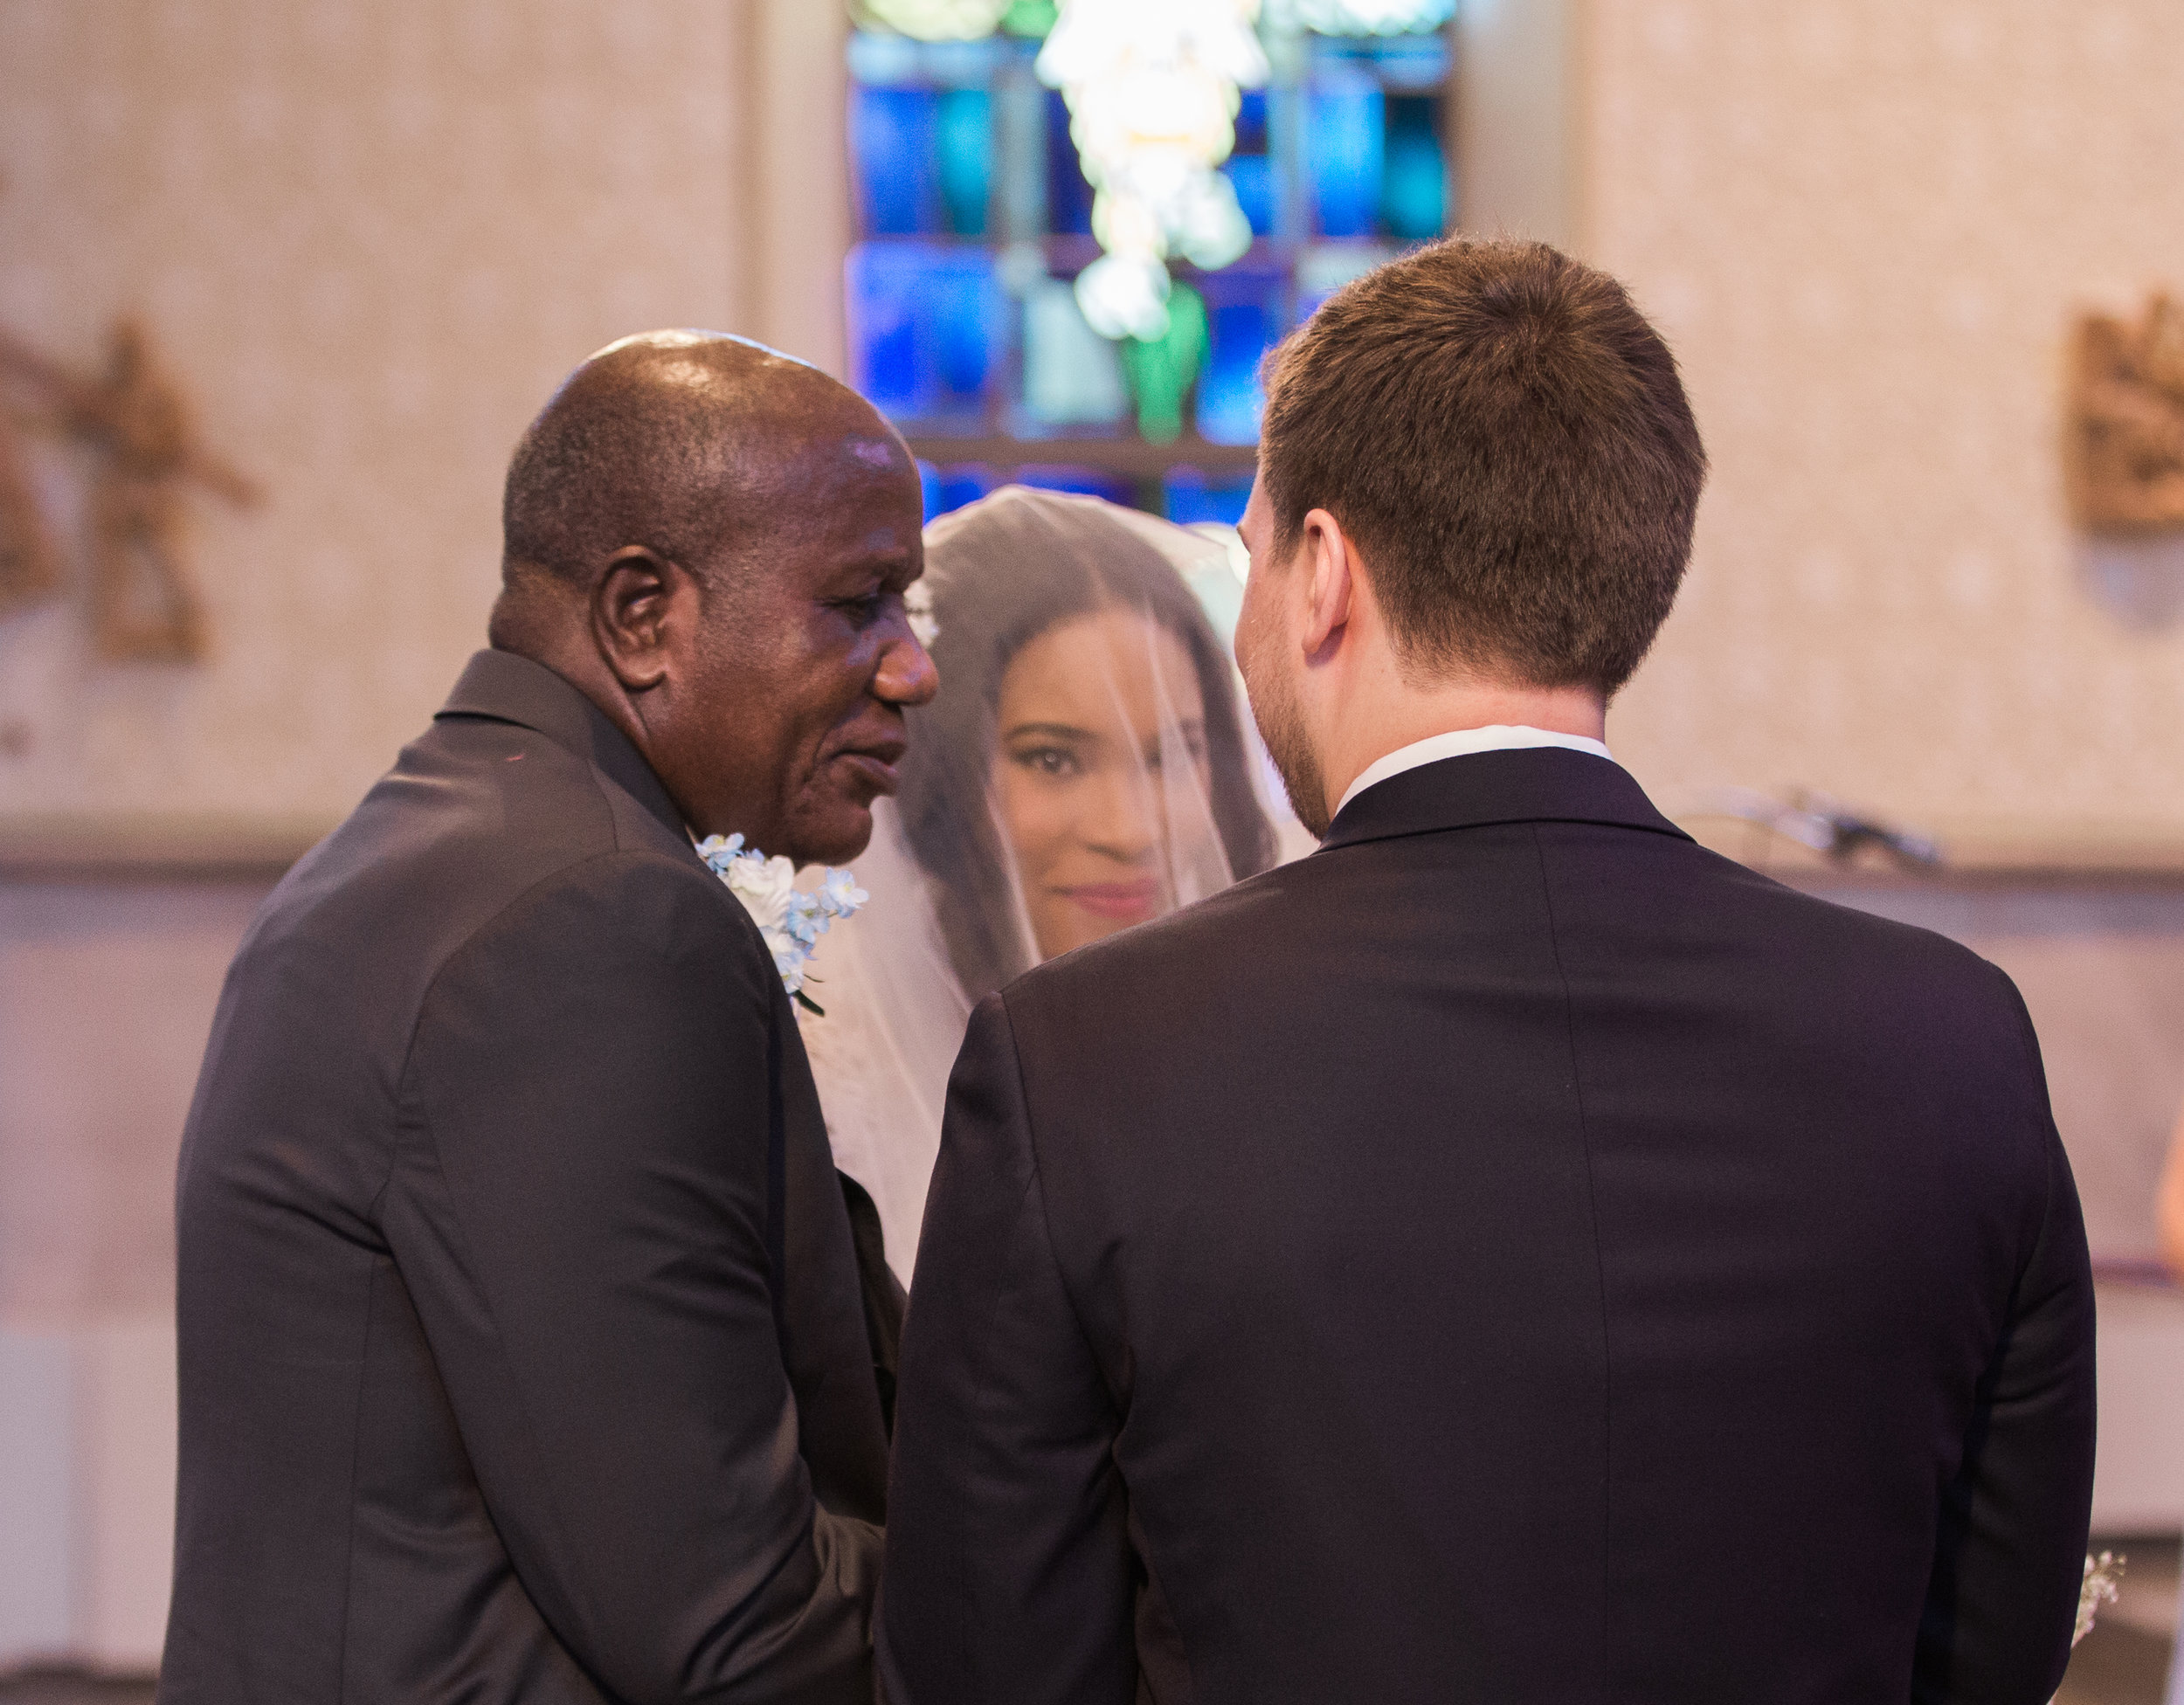 MAryland Wedding Immaculate Conception Church Towson-15.jpg